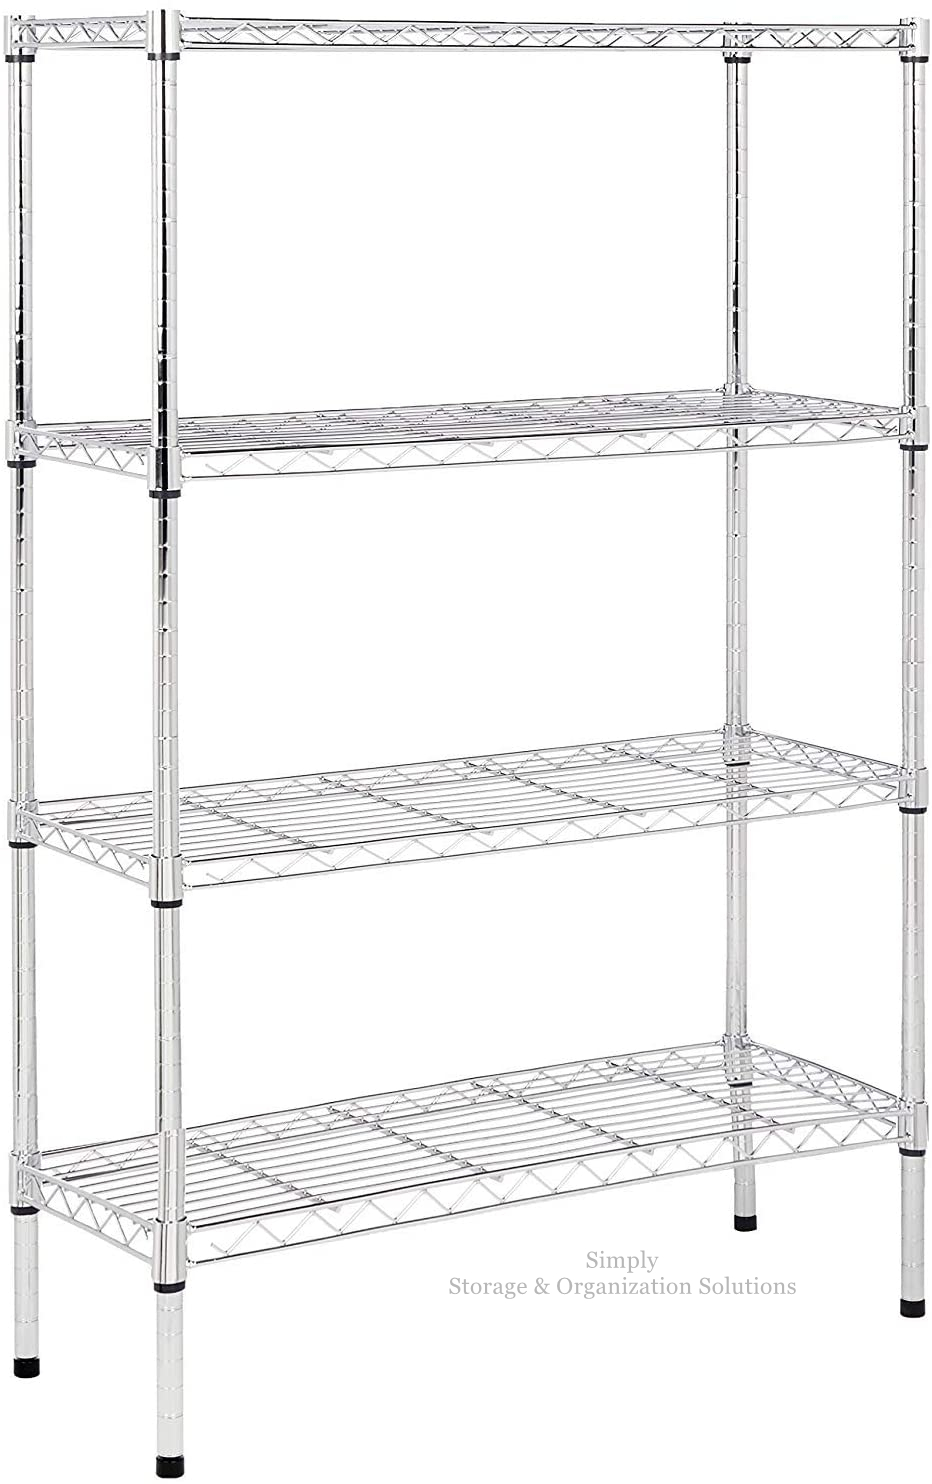 4-Shelf Light Duty Adjustable, Storage Shelving Unit, Steel Organizer Wire Rack, Chrome